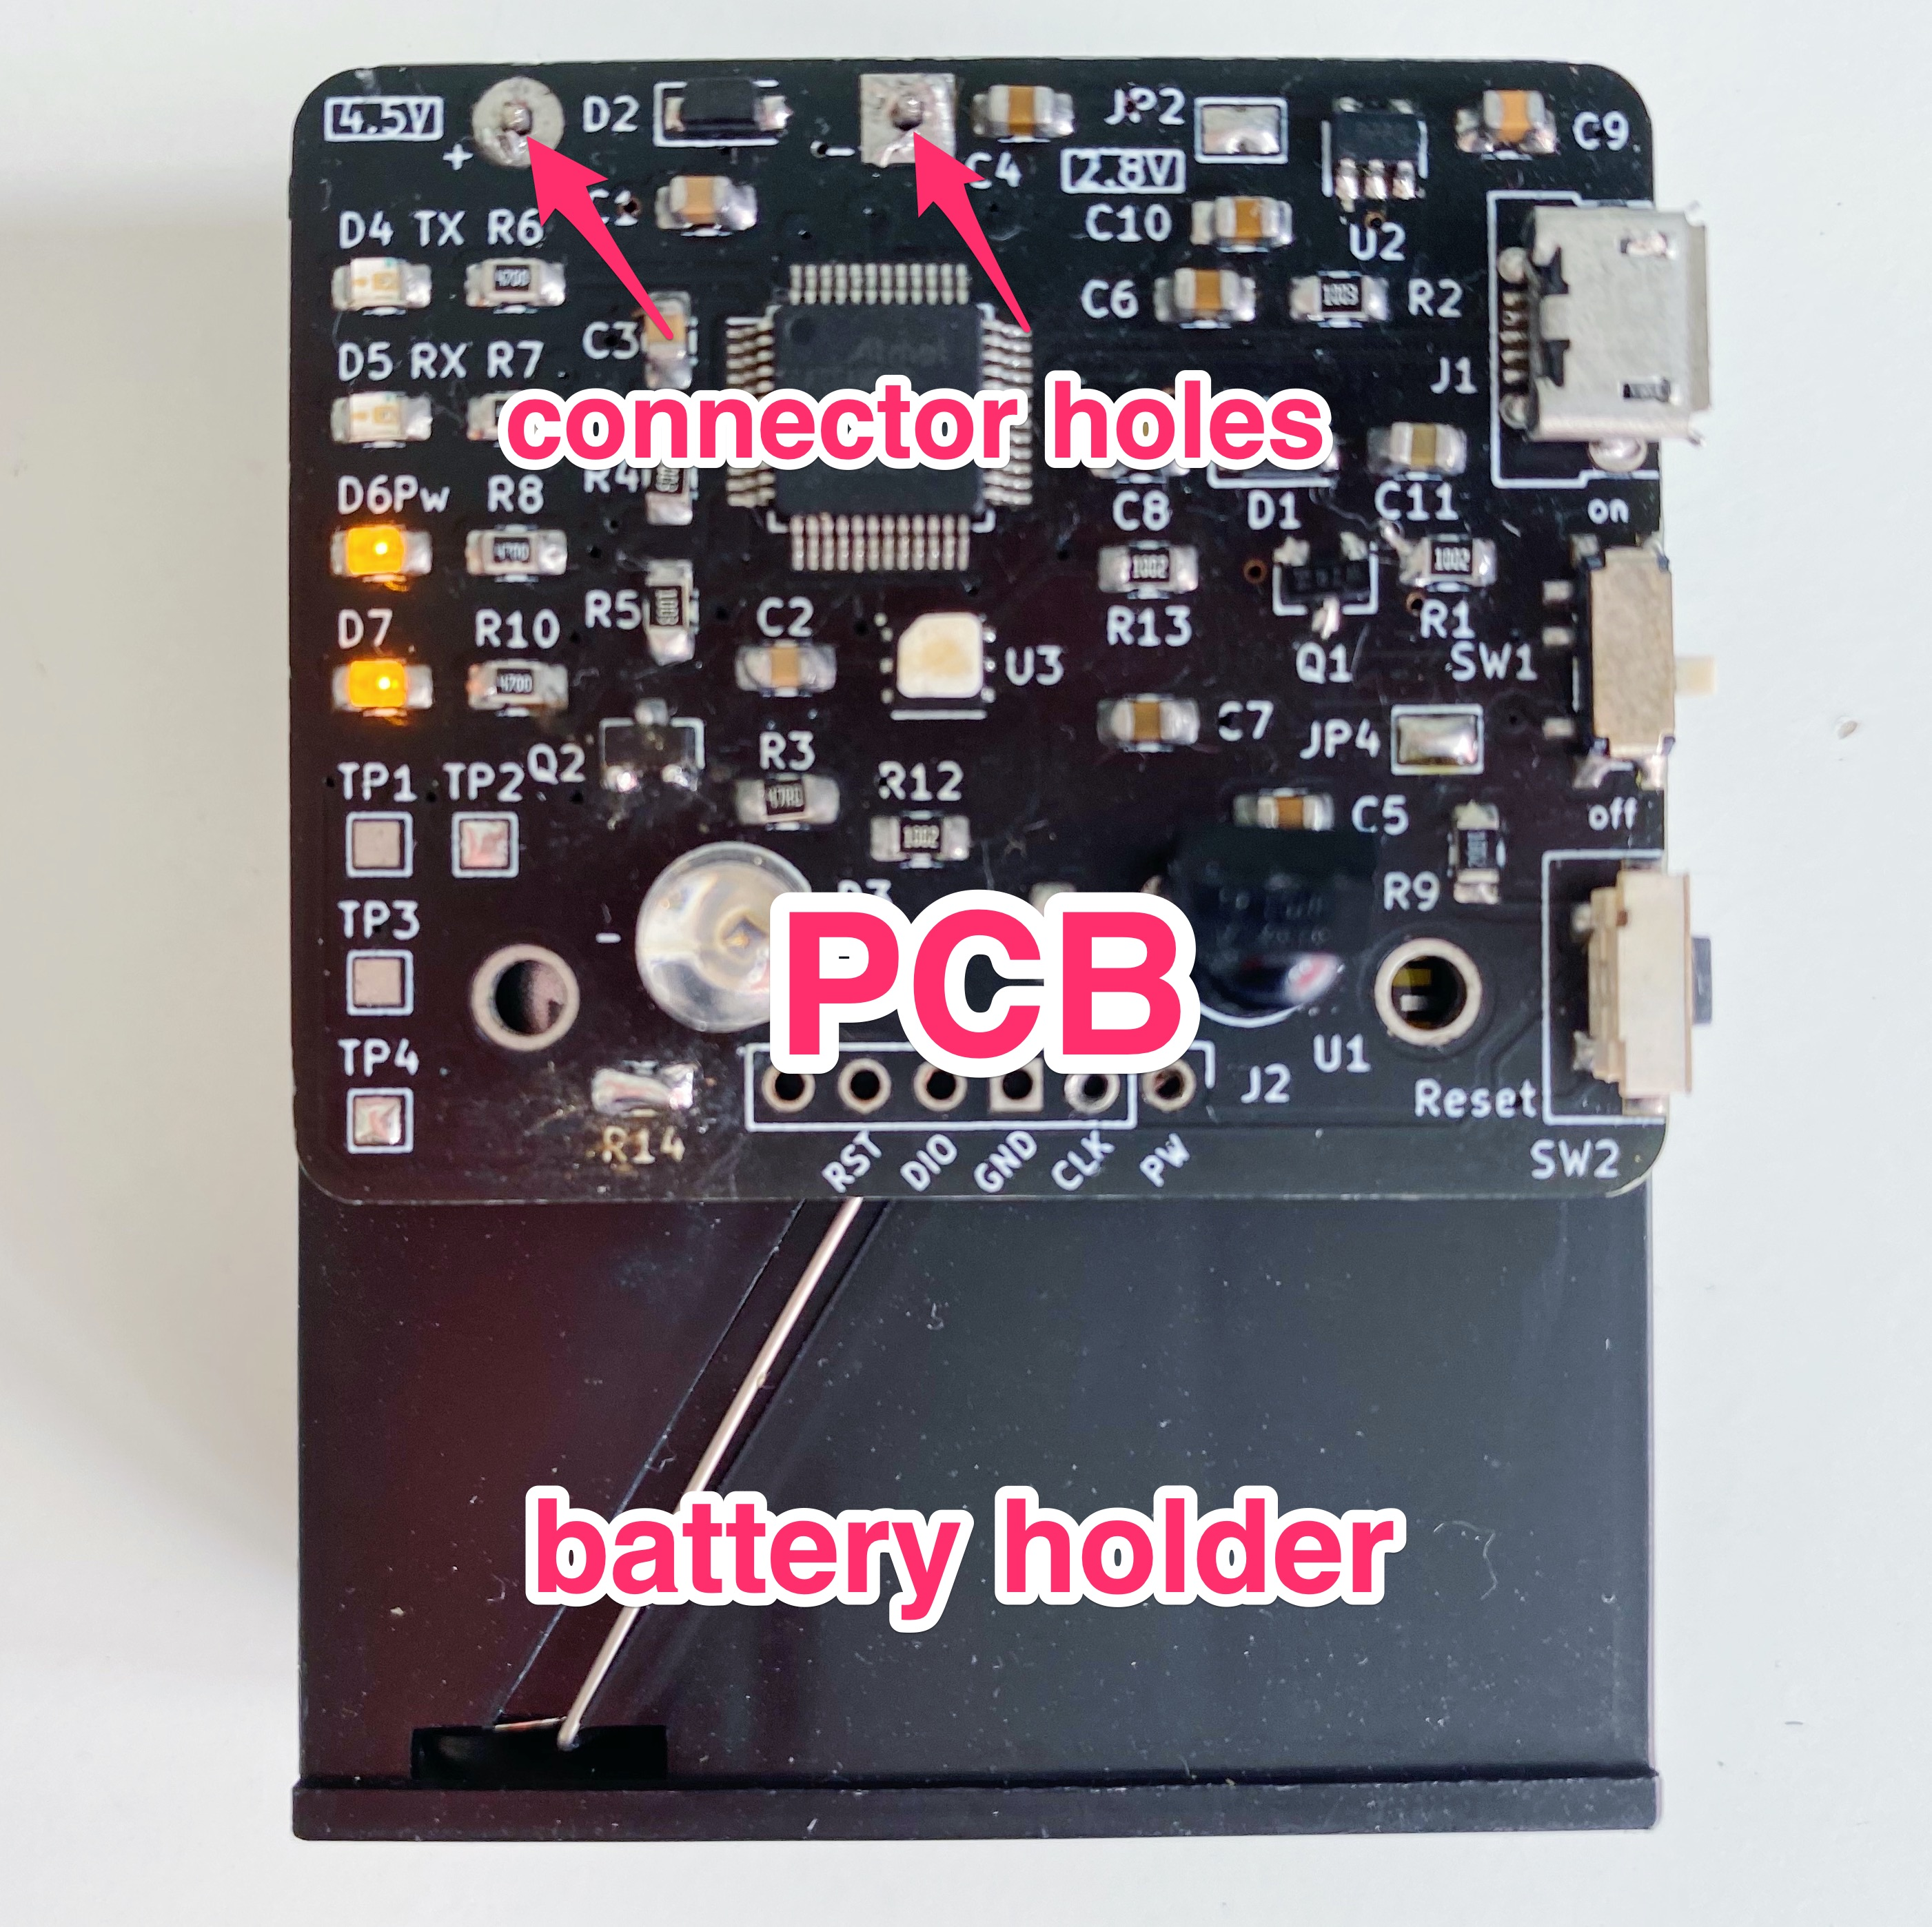 PCB battery connector holes